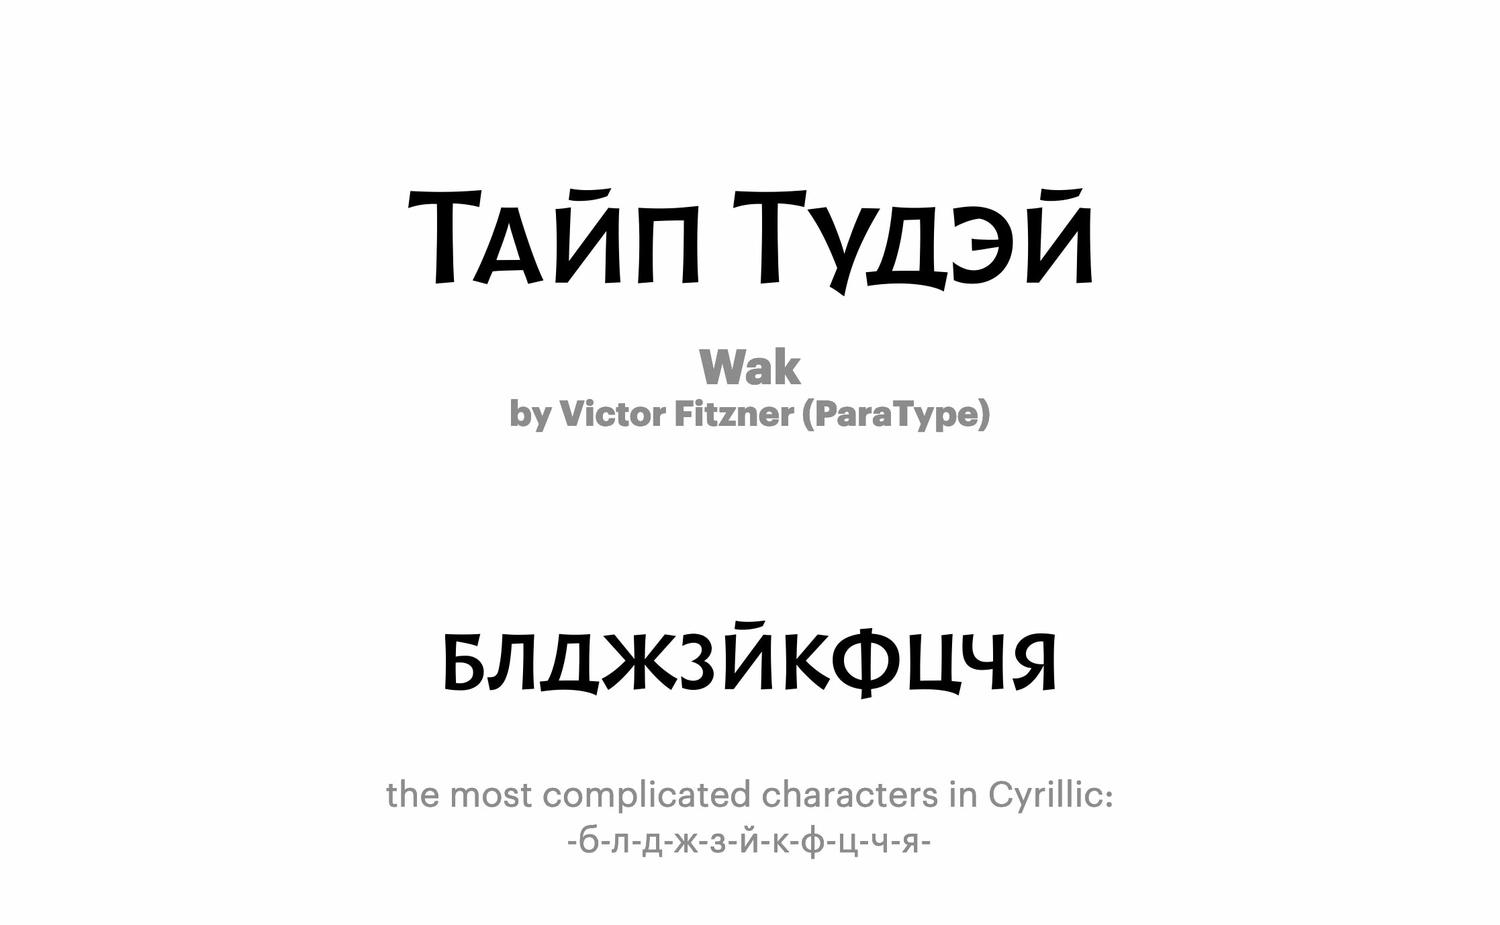 Wak-by-Victor-Fitzner-(ParaType)